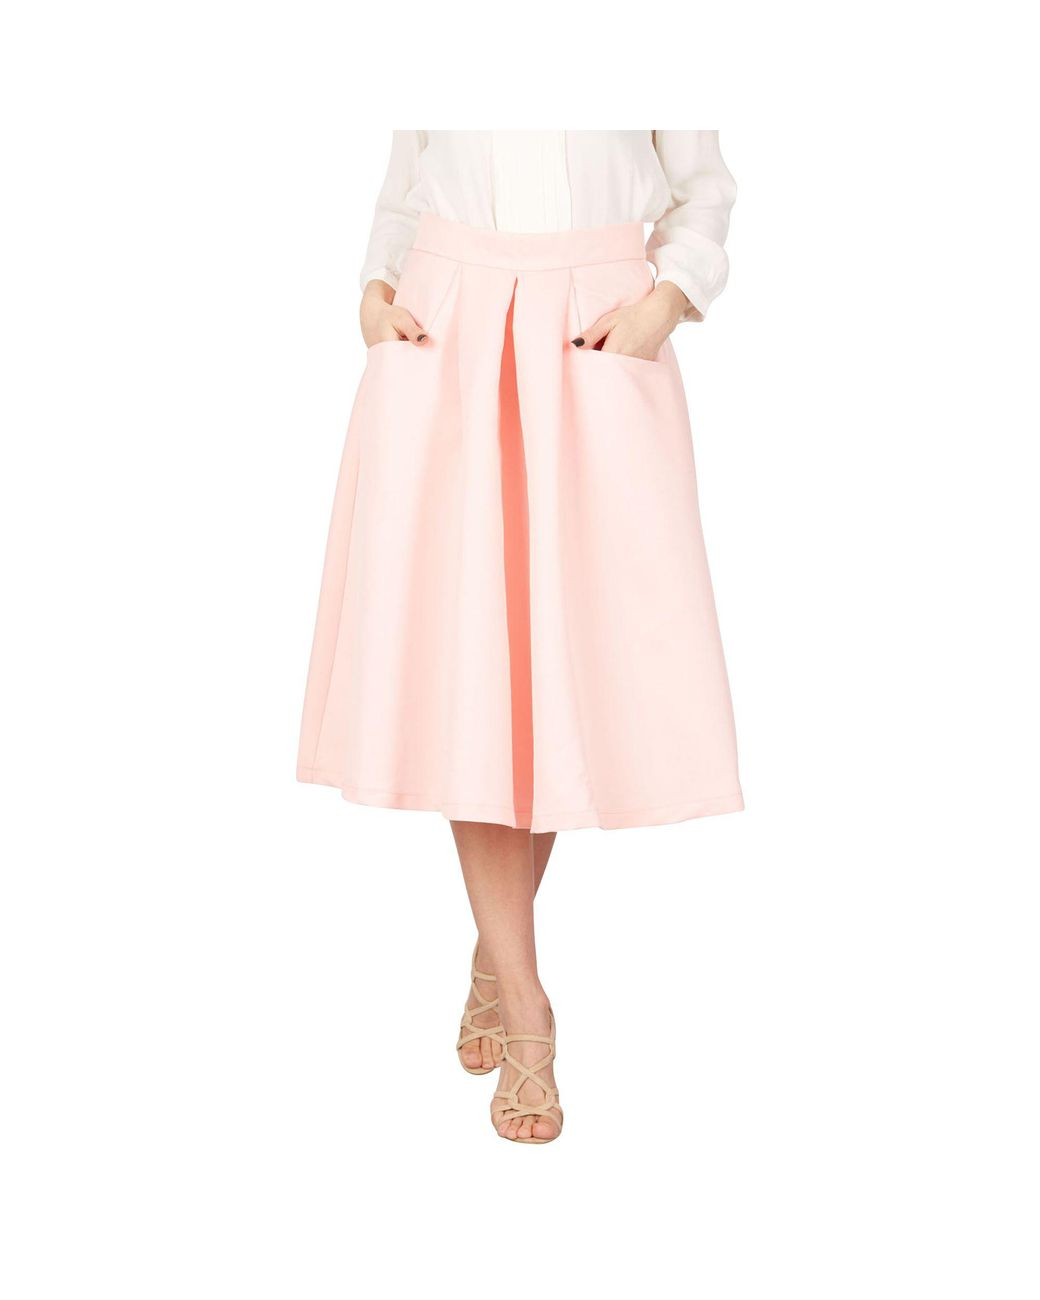 ffca81e579 Jolie Moi Pink Pleated A Line Midi Skirt in Pink - Lyst